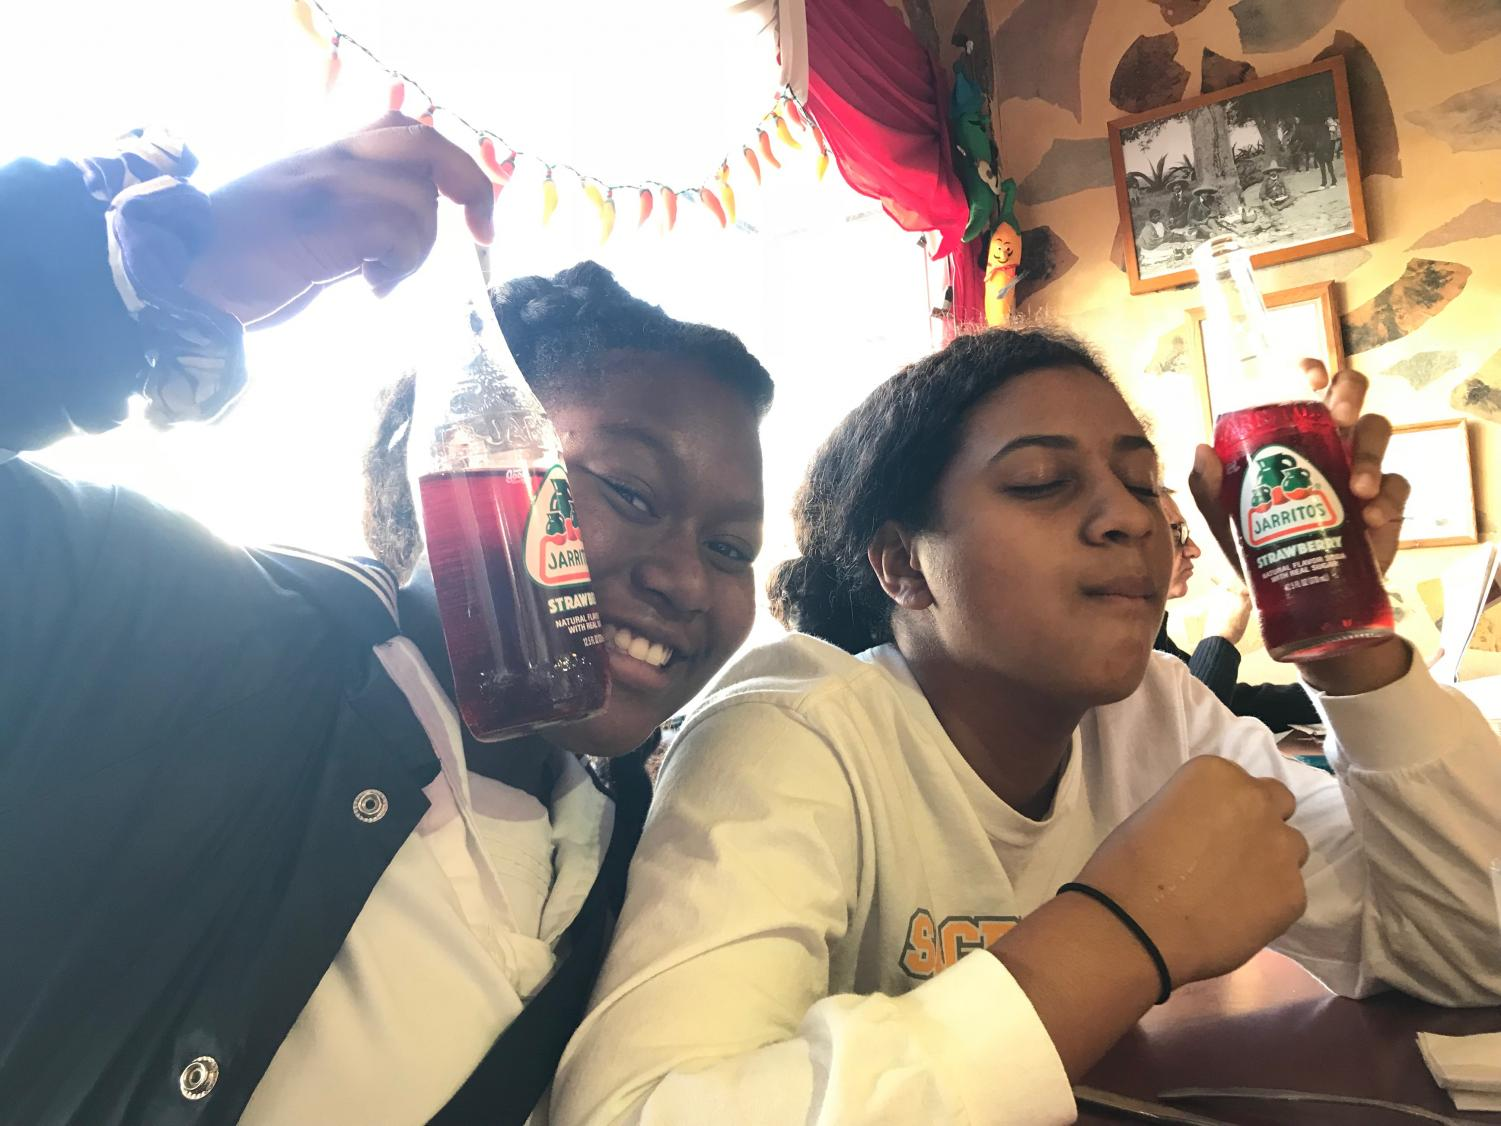 Sophomores Destiny Carter and EjaLee Chavis  share a strawberry soda from Mexican restaurant Aztec. Photo by Noe Nekotani.